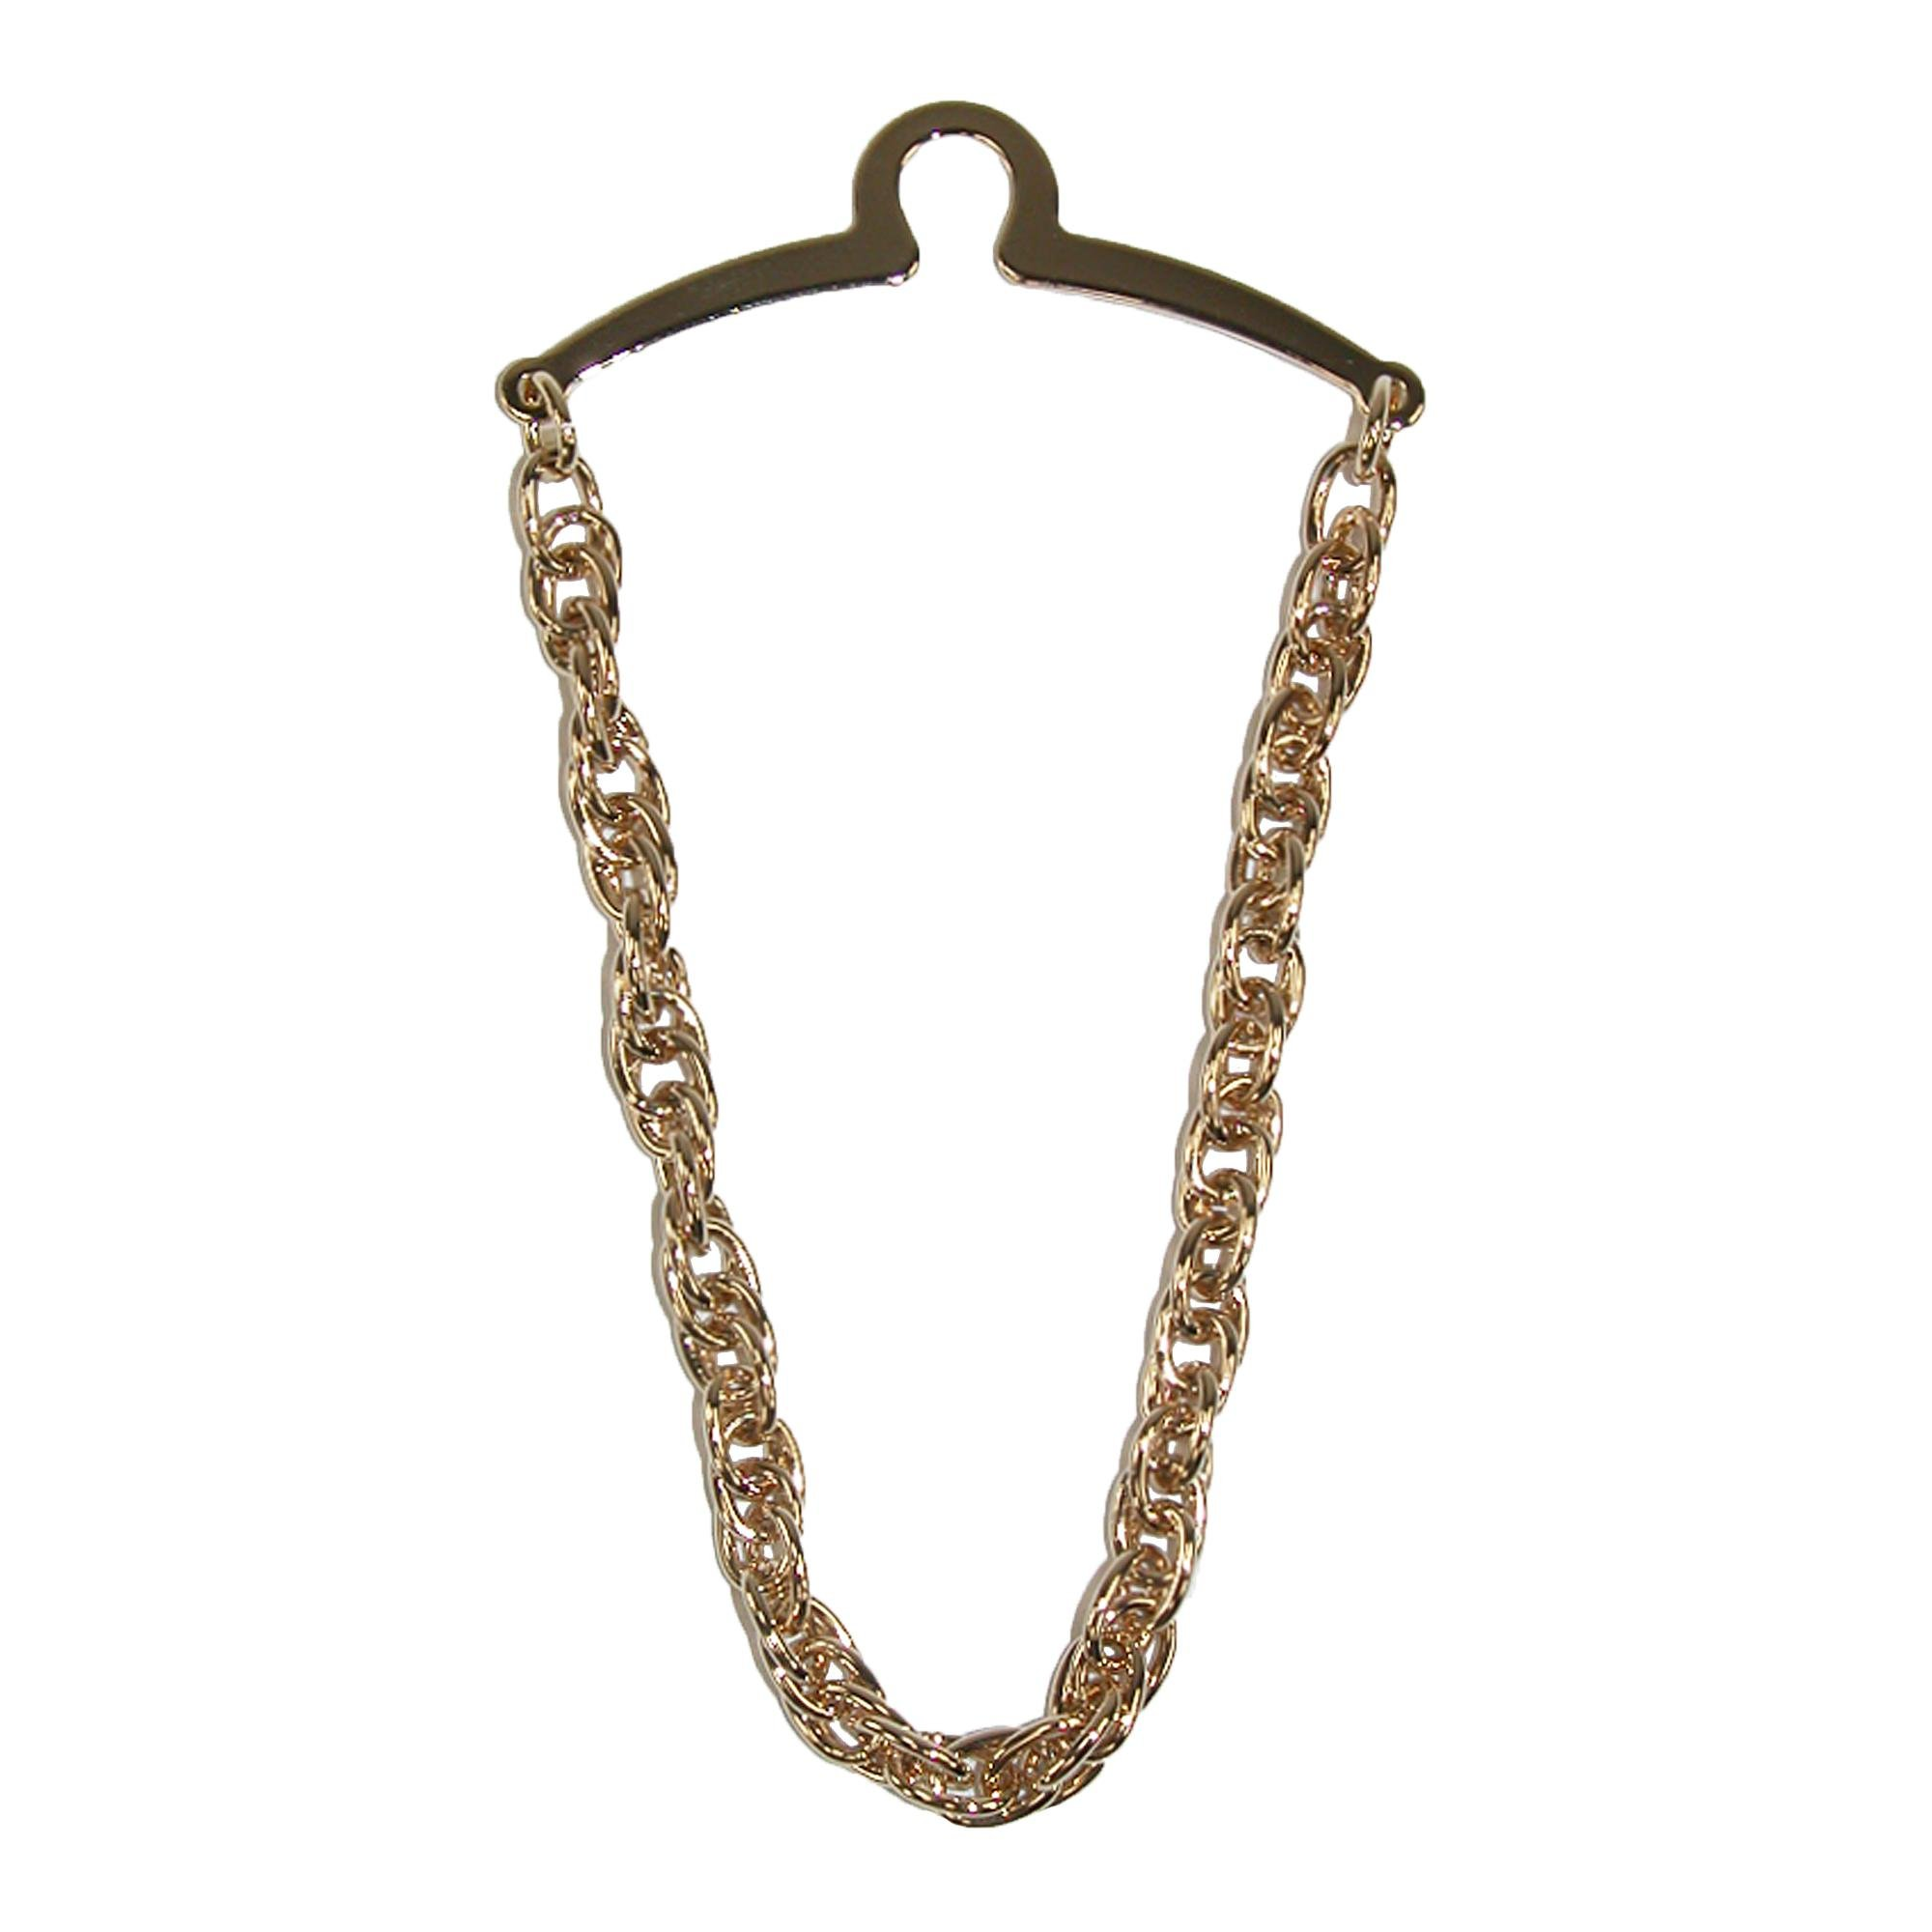 Competition Inc. Men's Double Loop Tie Chain, Gold